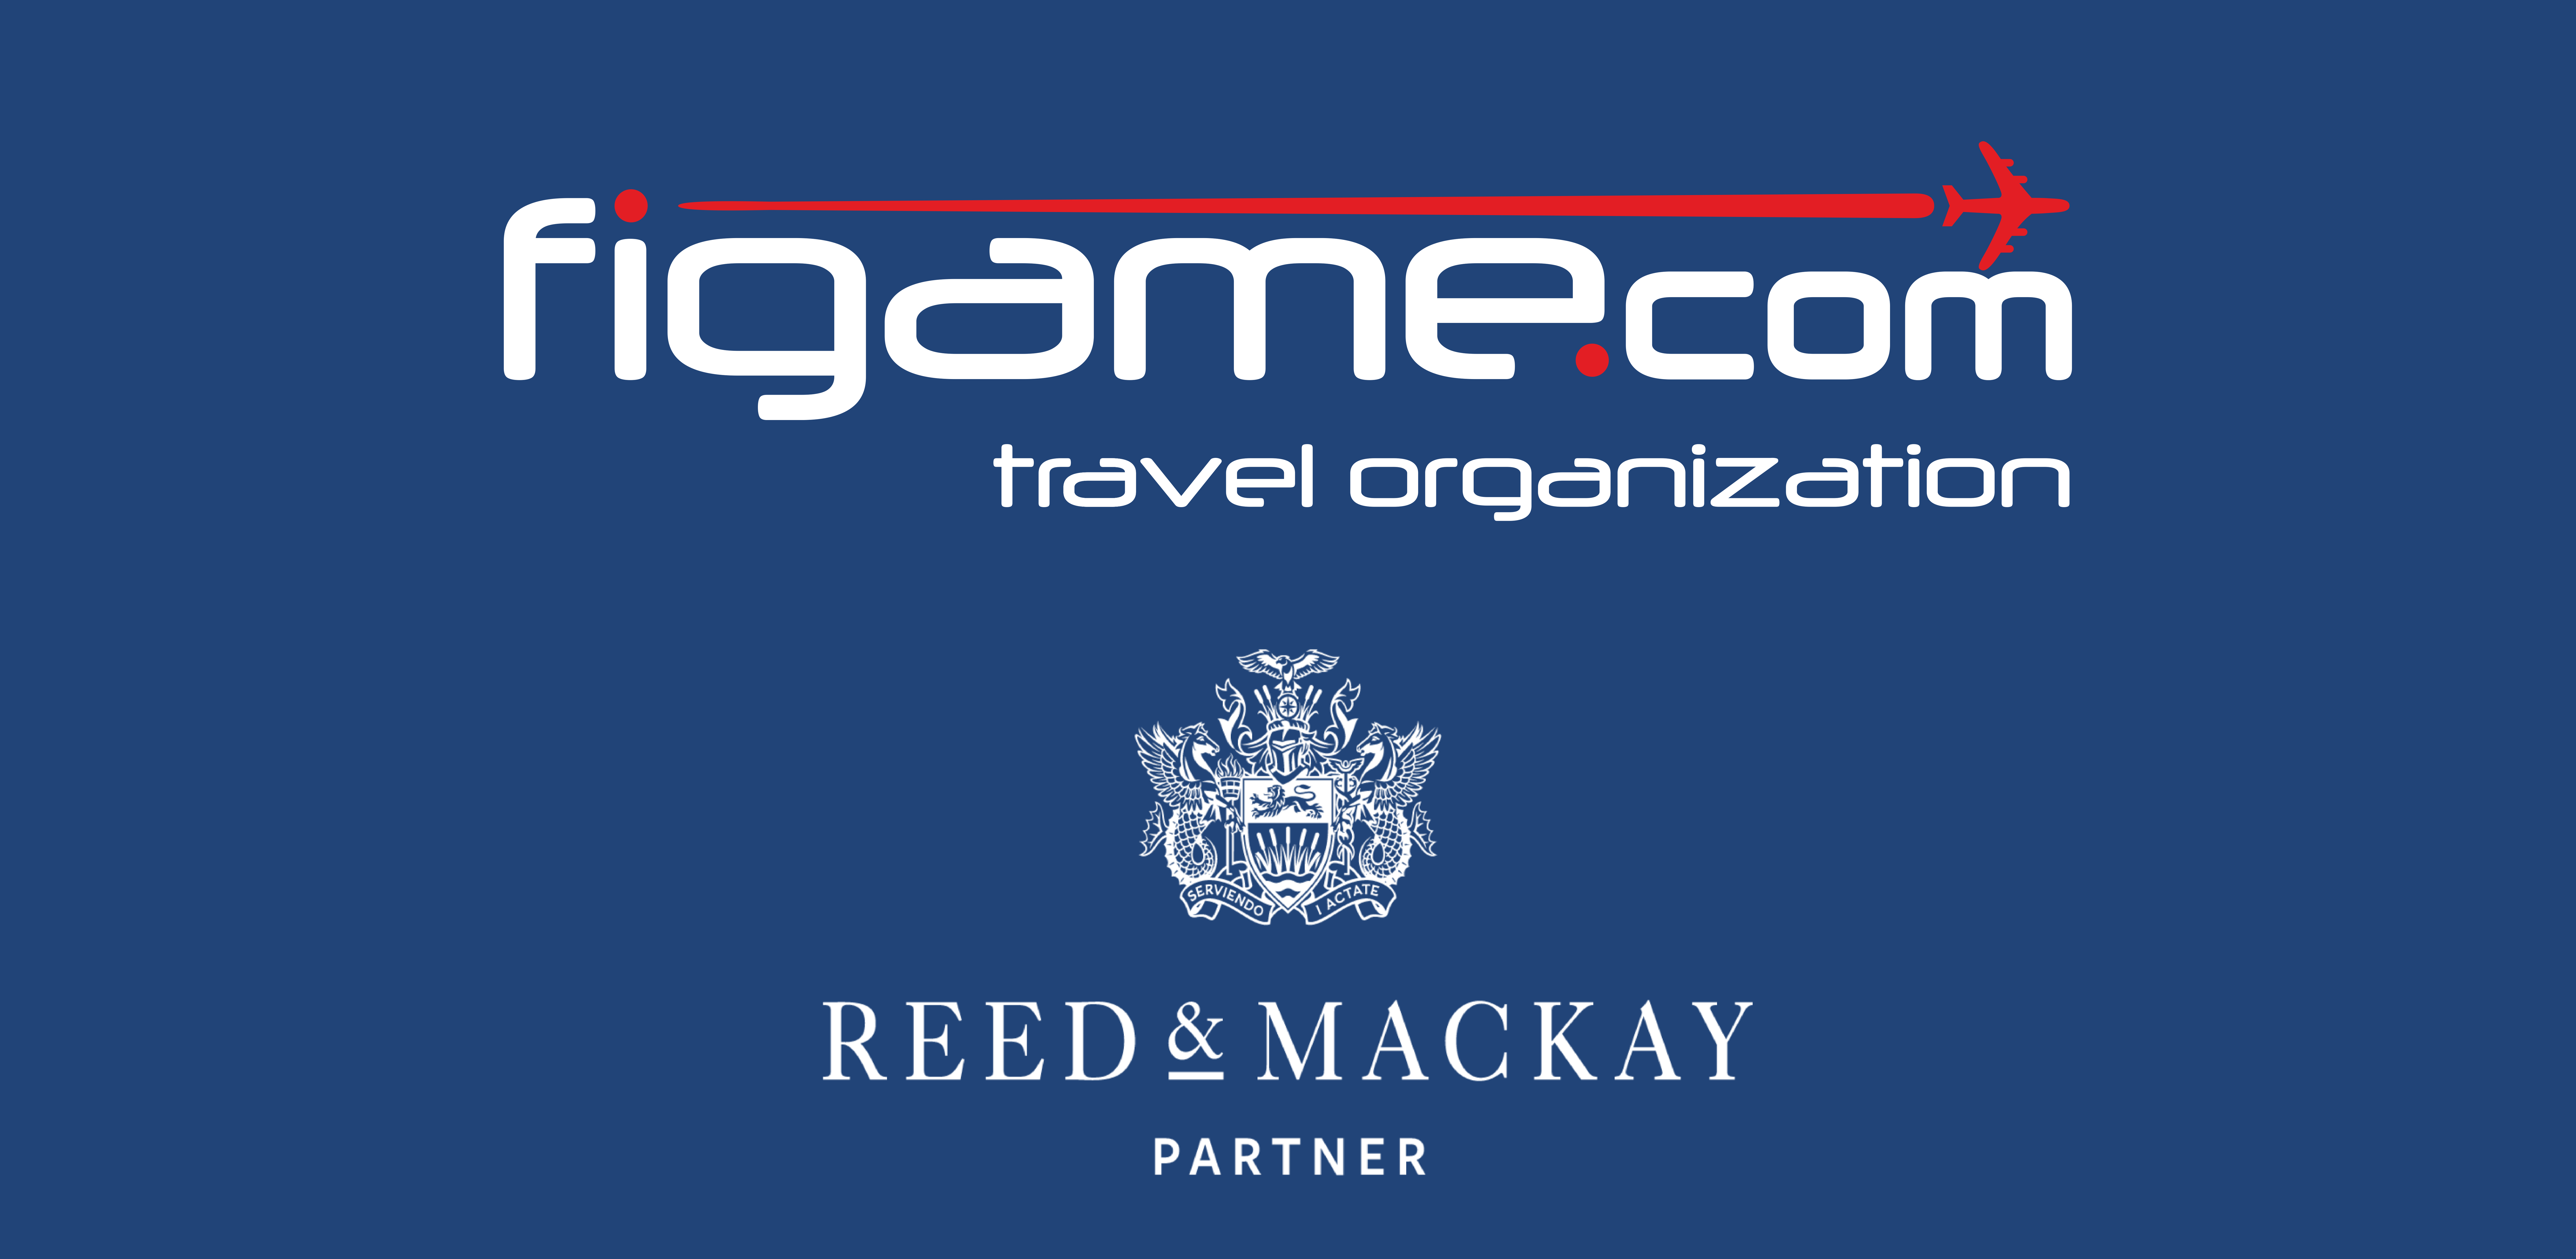 figame.com and reed & mackay partnership